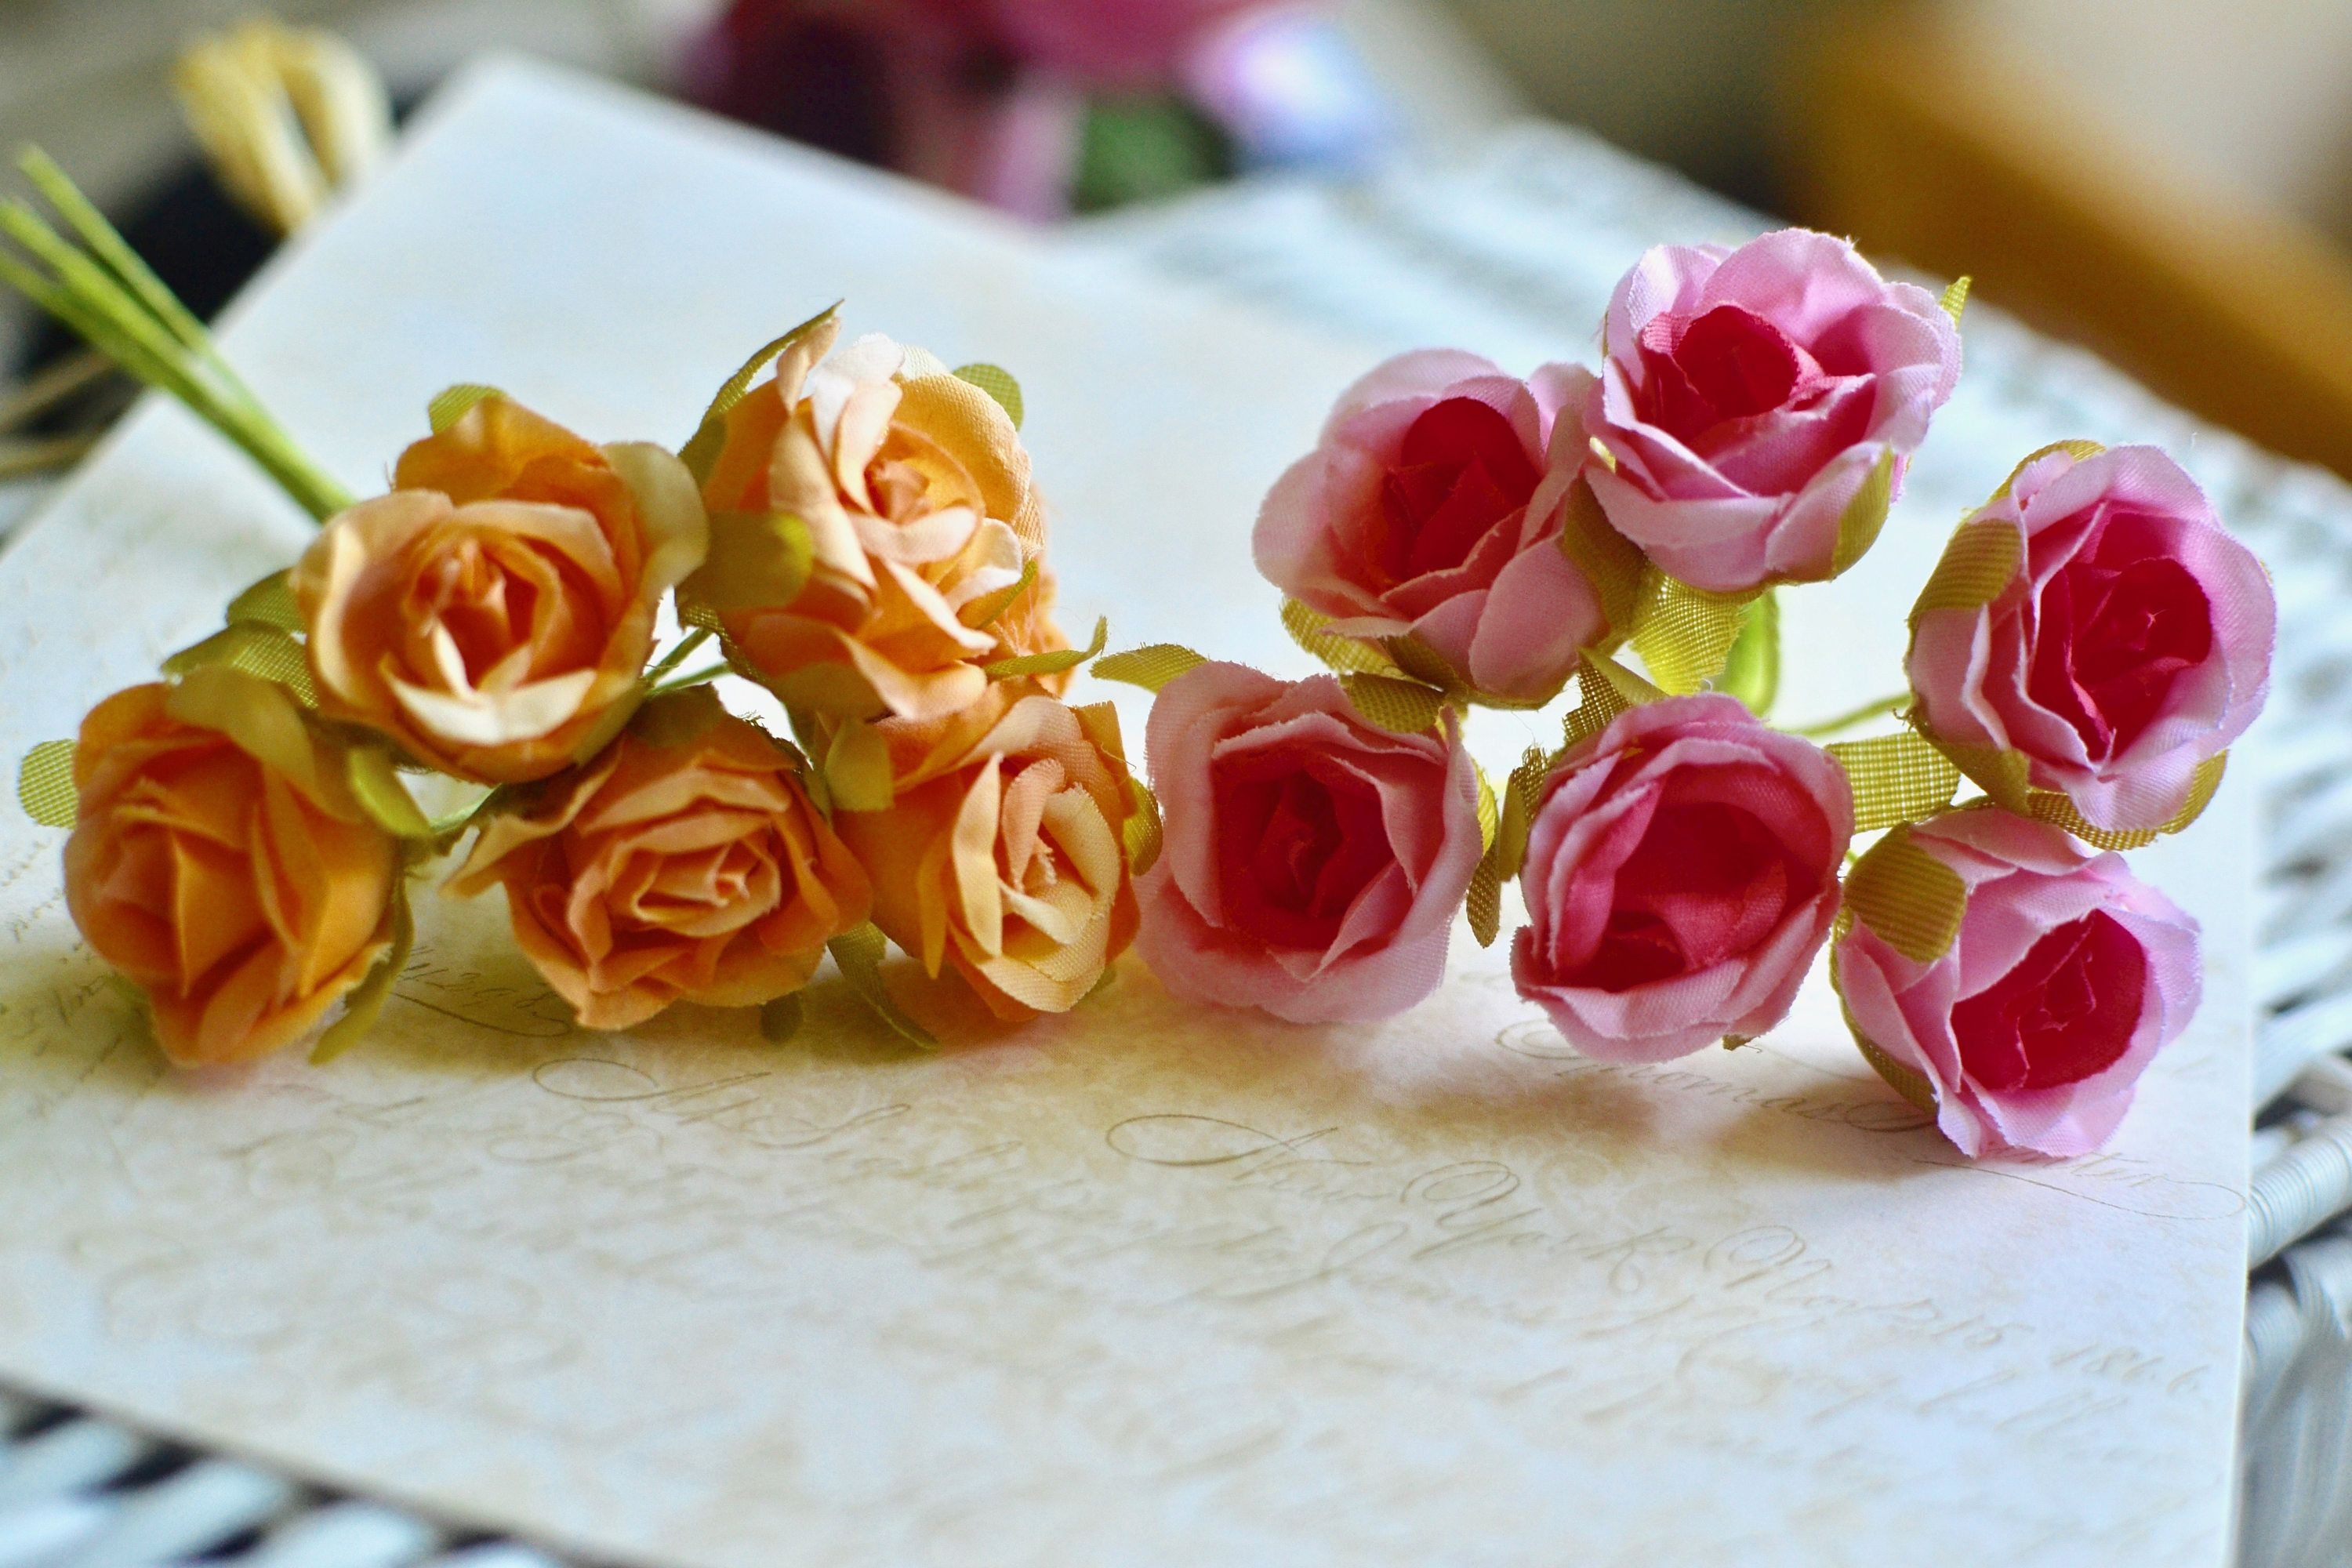 6 small artificial roses i pink rose i orange rose i fabric roses i small pink and orange artificial roseflower bunch with stems for decoration hair crafts and other craft projects colour pink and orange measurements 6 mightylinksfo